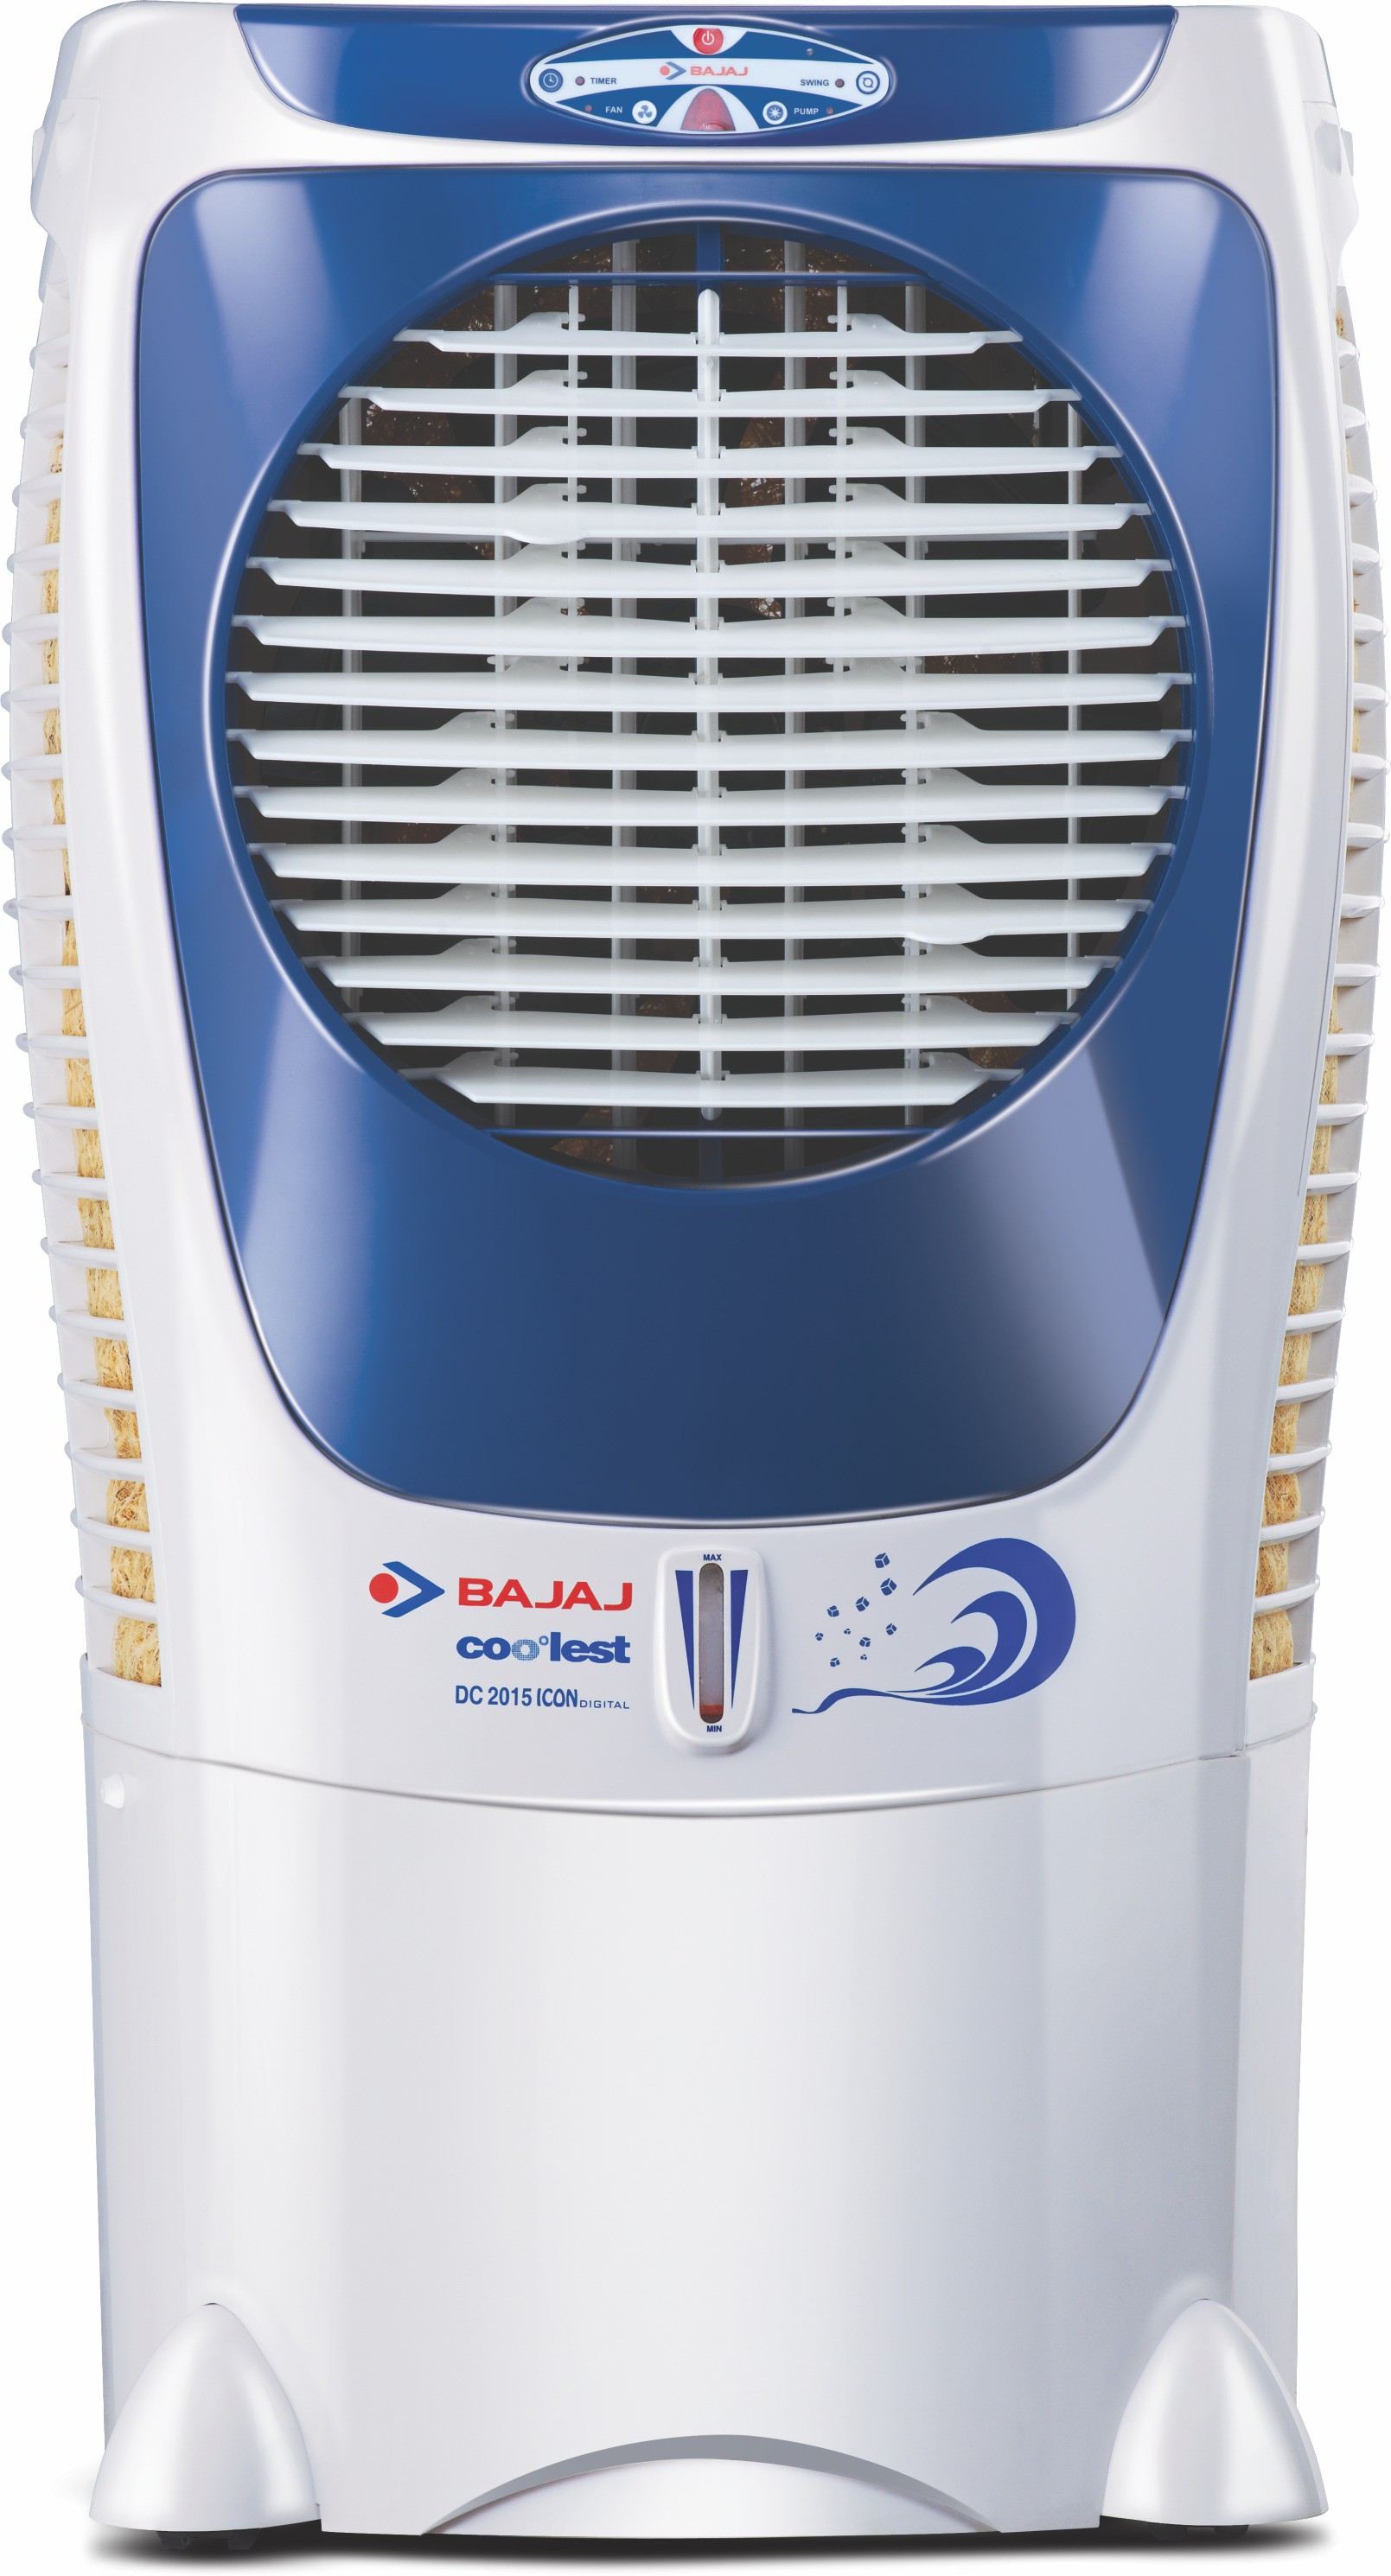 Bajaj DC 2015 Icon Digital Desert Air Cooler(White, Blue, 43 Litres)   Air Cooler  (Bajaj)